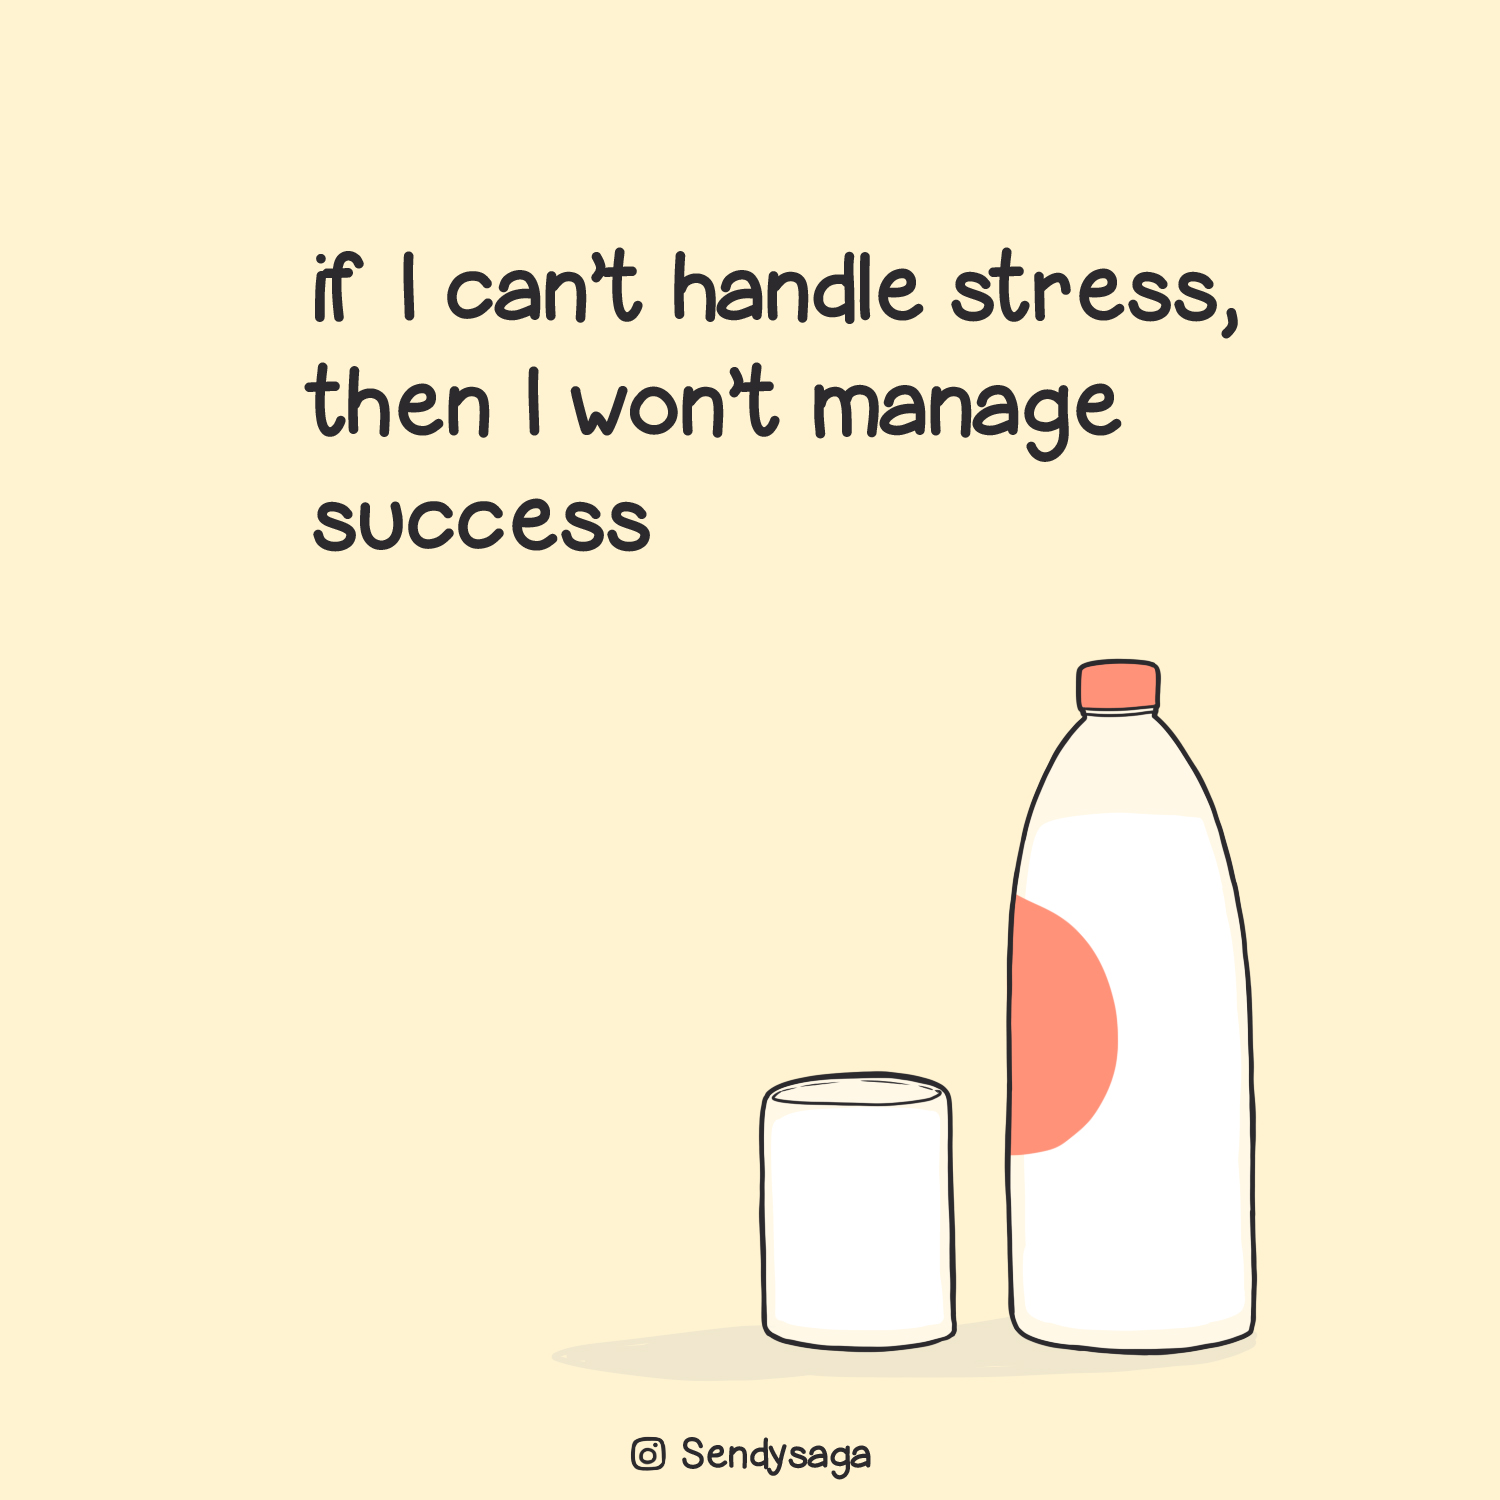 if I cant handle stress then I wont manage success